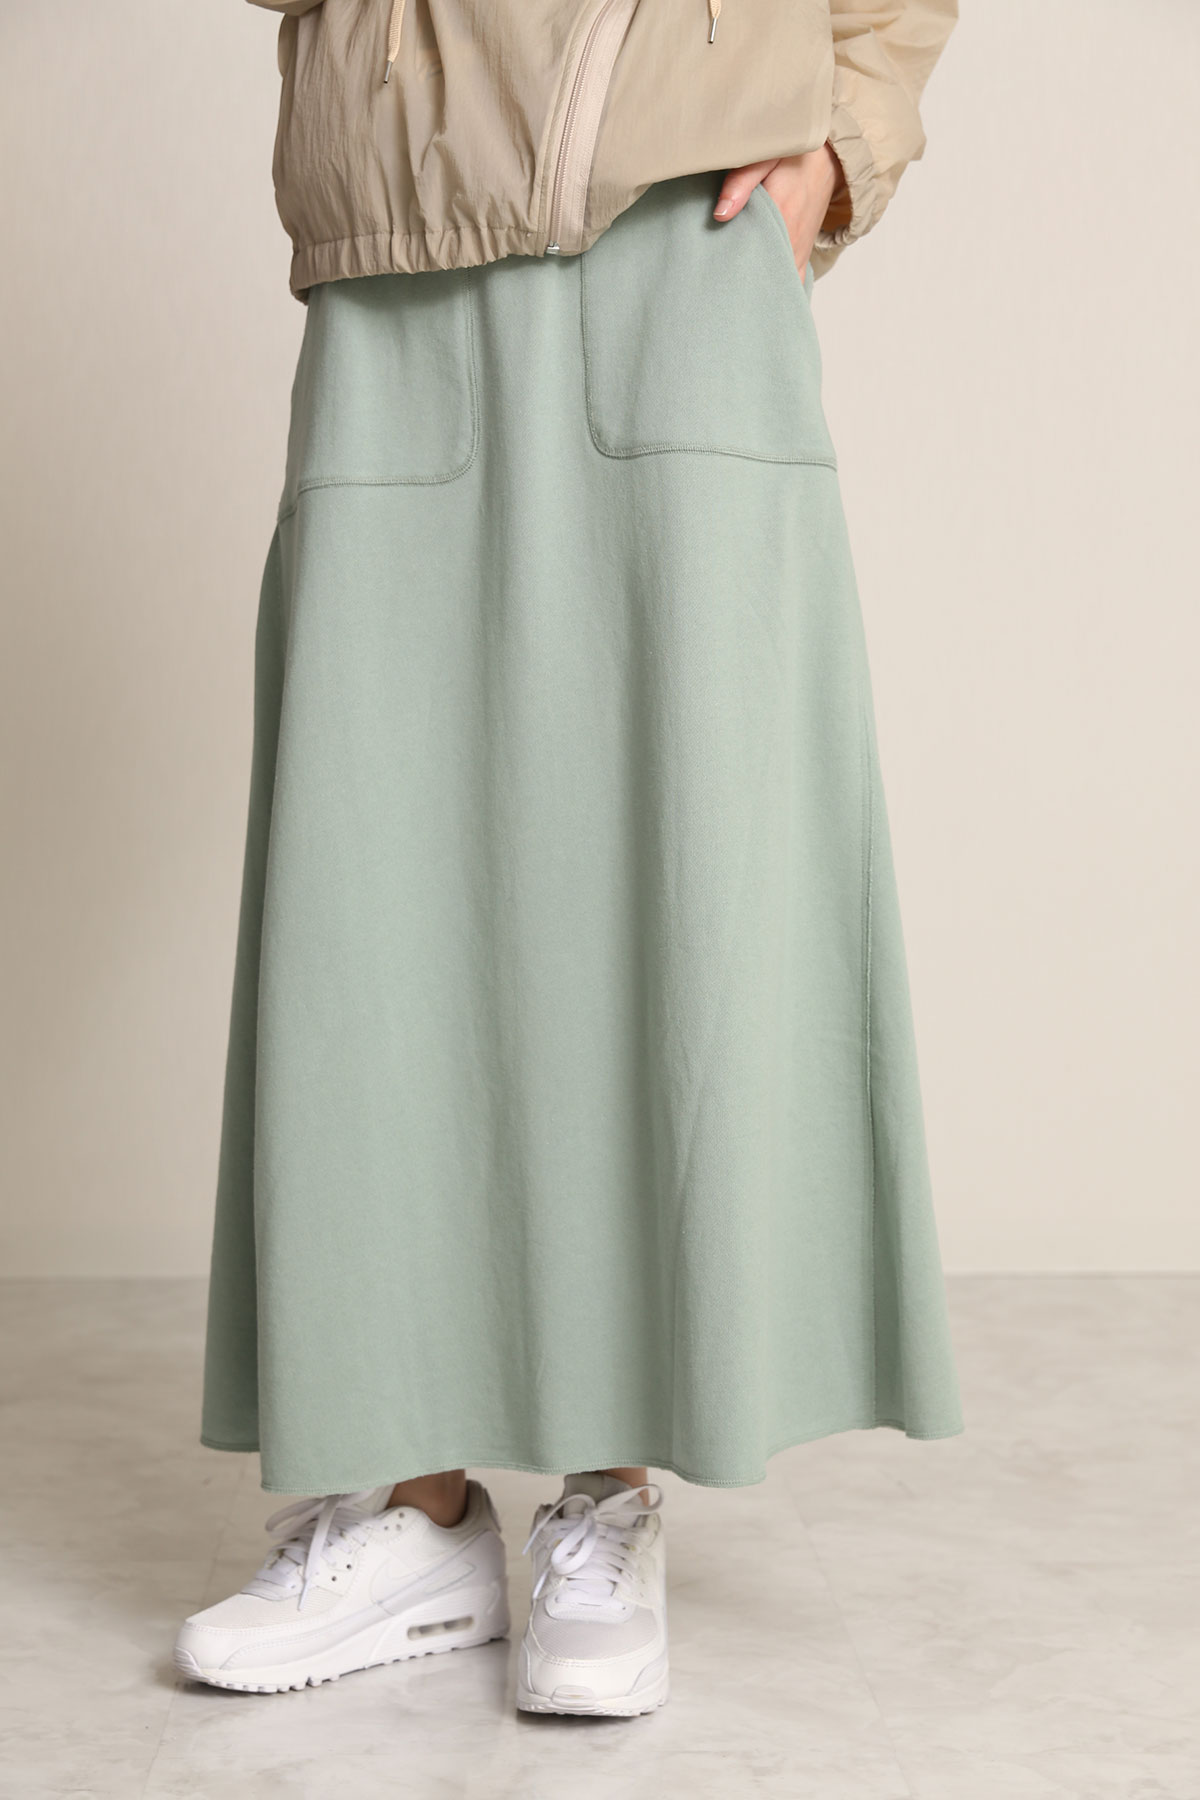 BO21-131T-mint 1mile Western Cut Skirt-MINT-【BO21-131T】Del.Jan.